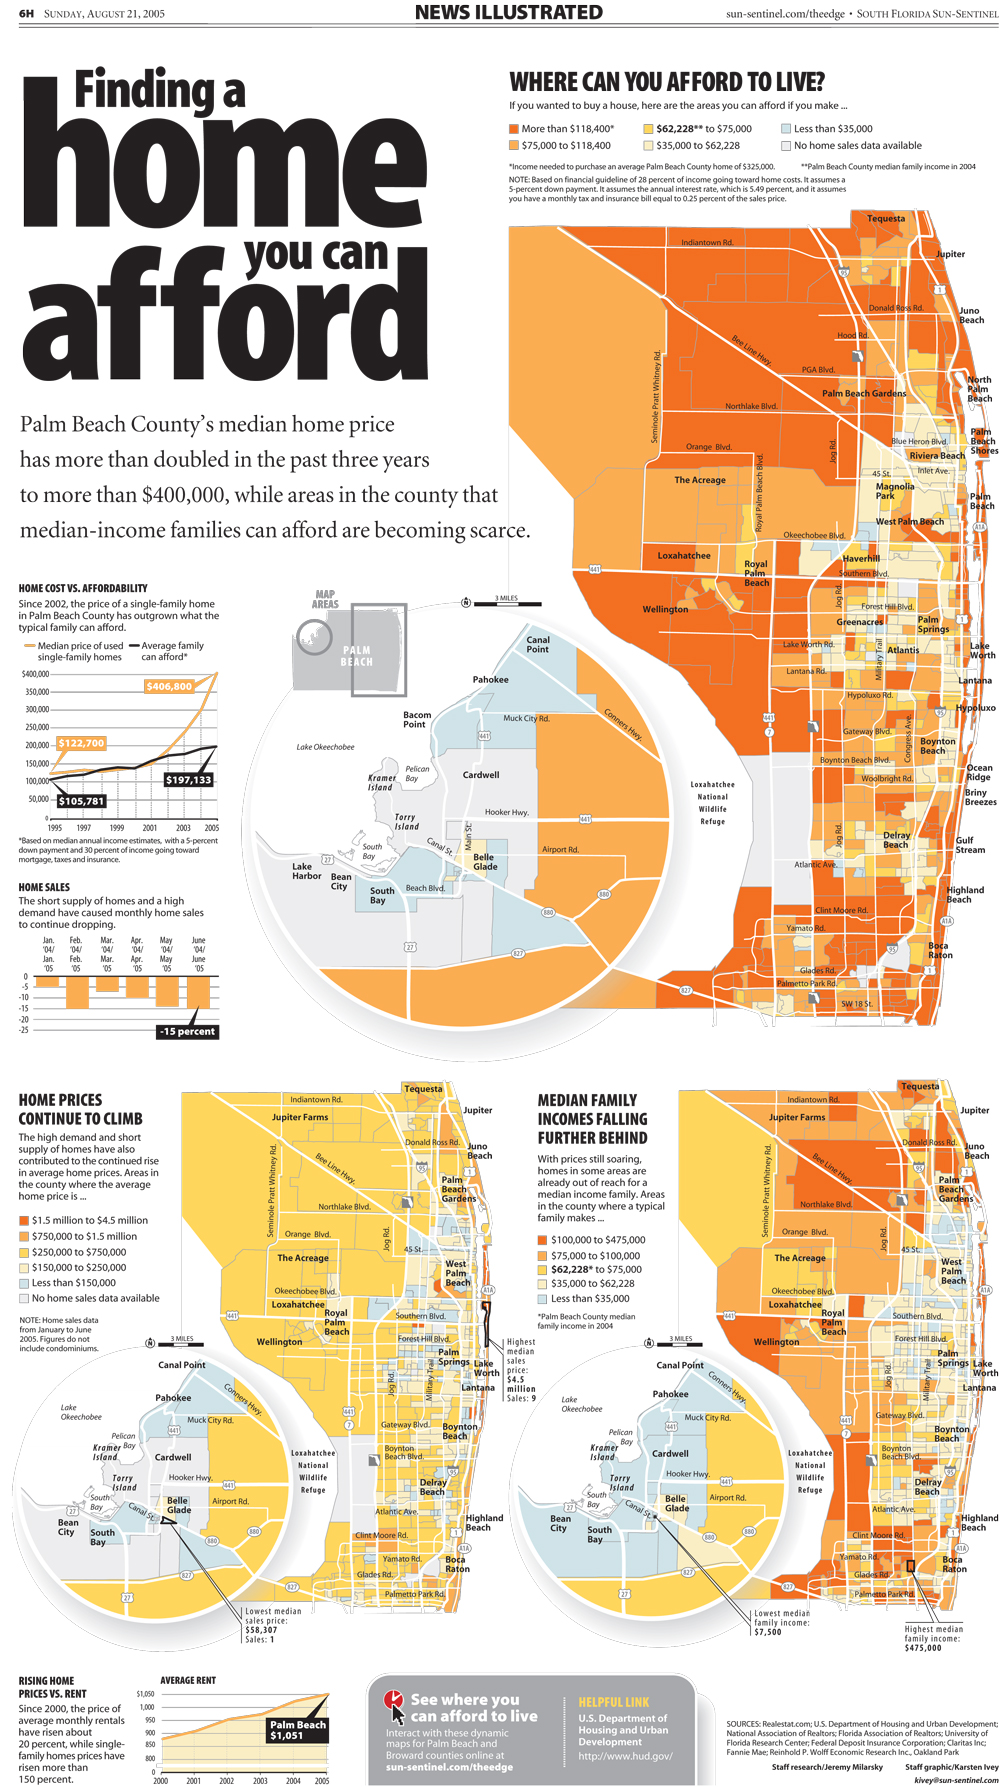 palm beach home prices news illustrated infographic